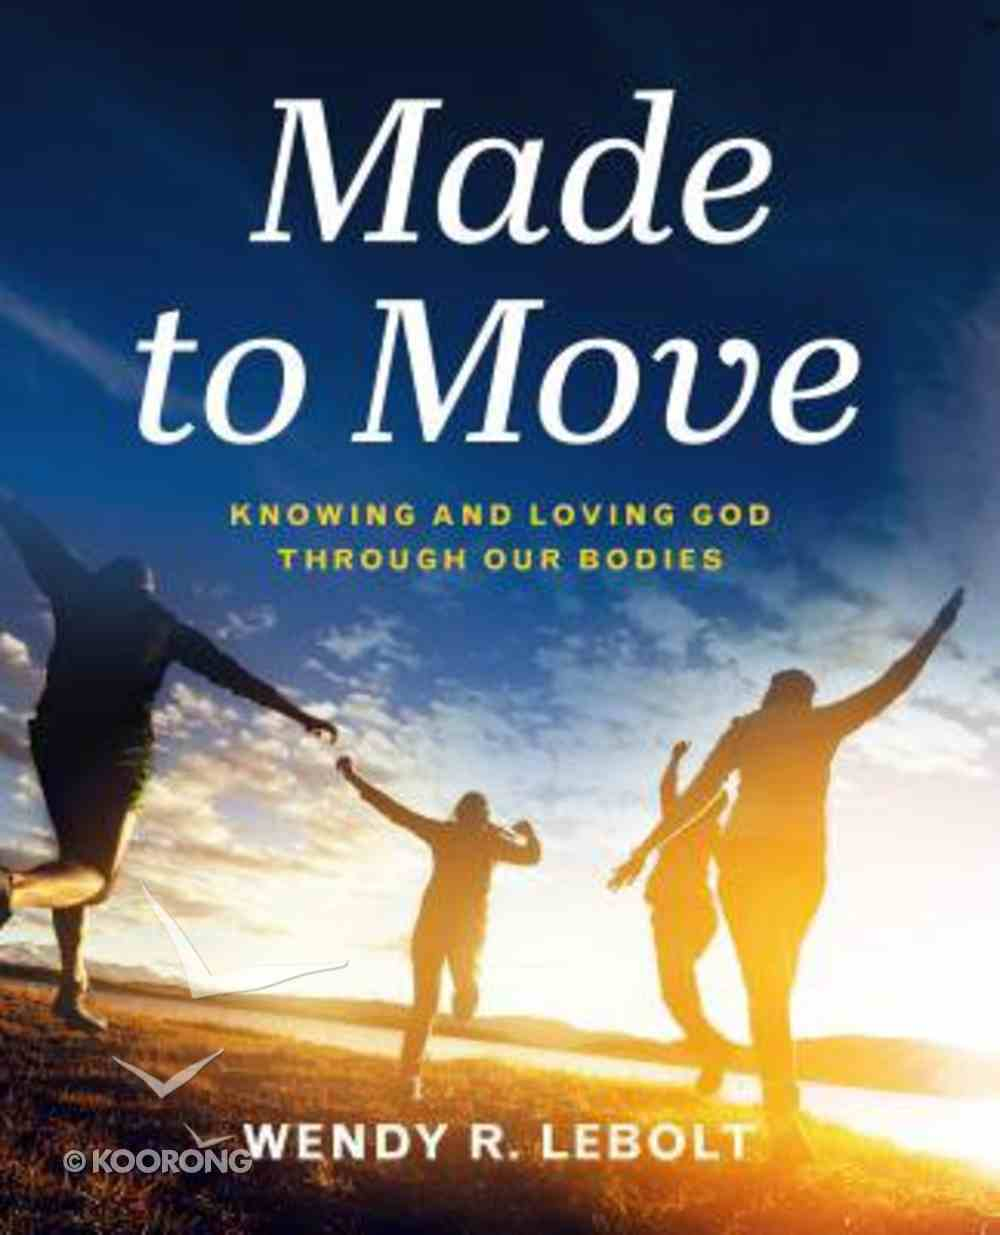 Made to Move: Knowing and Loving God Through Our Bodies Paperback